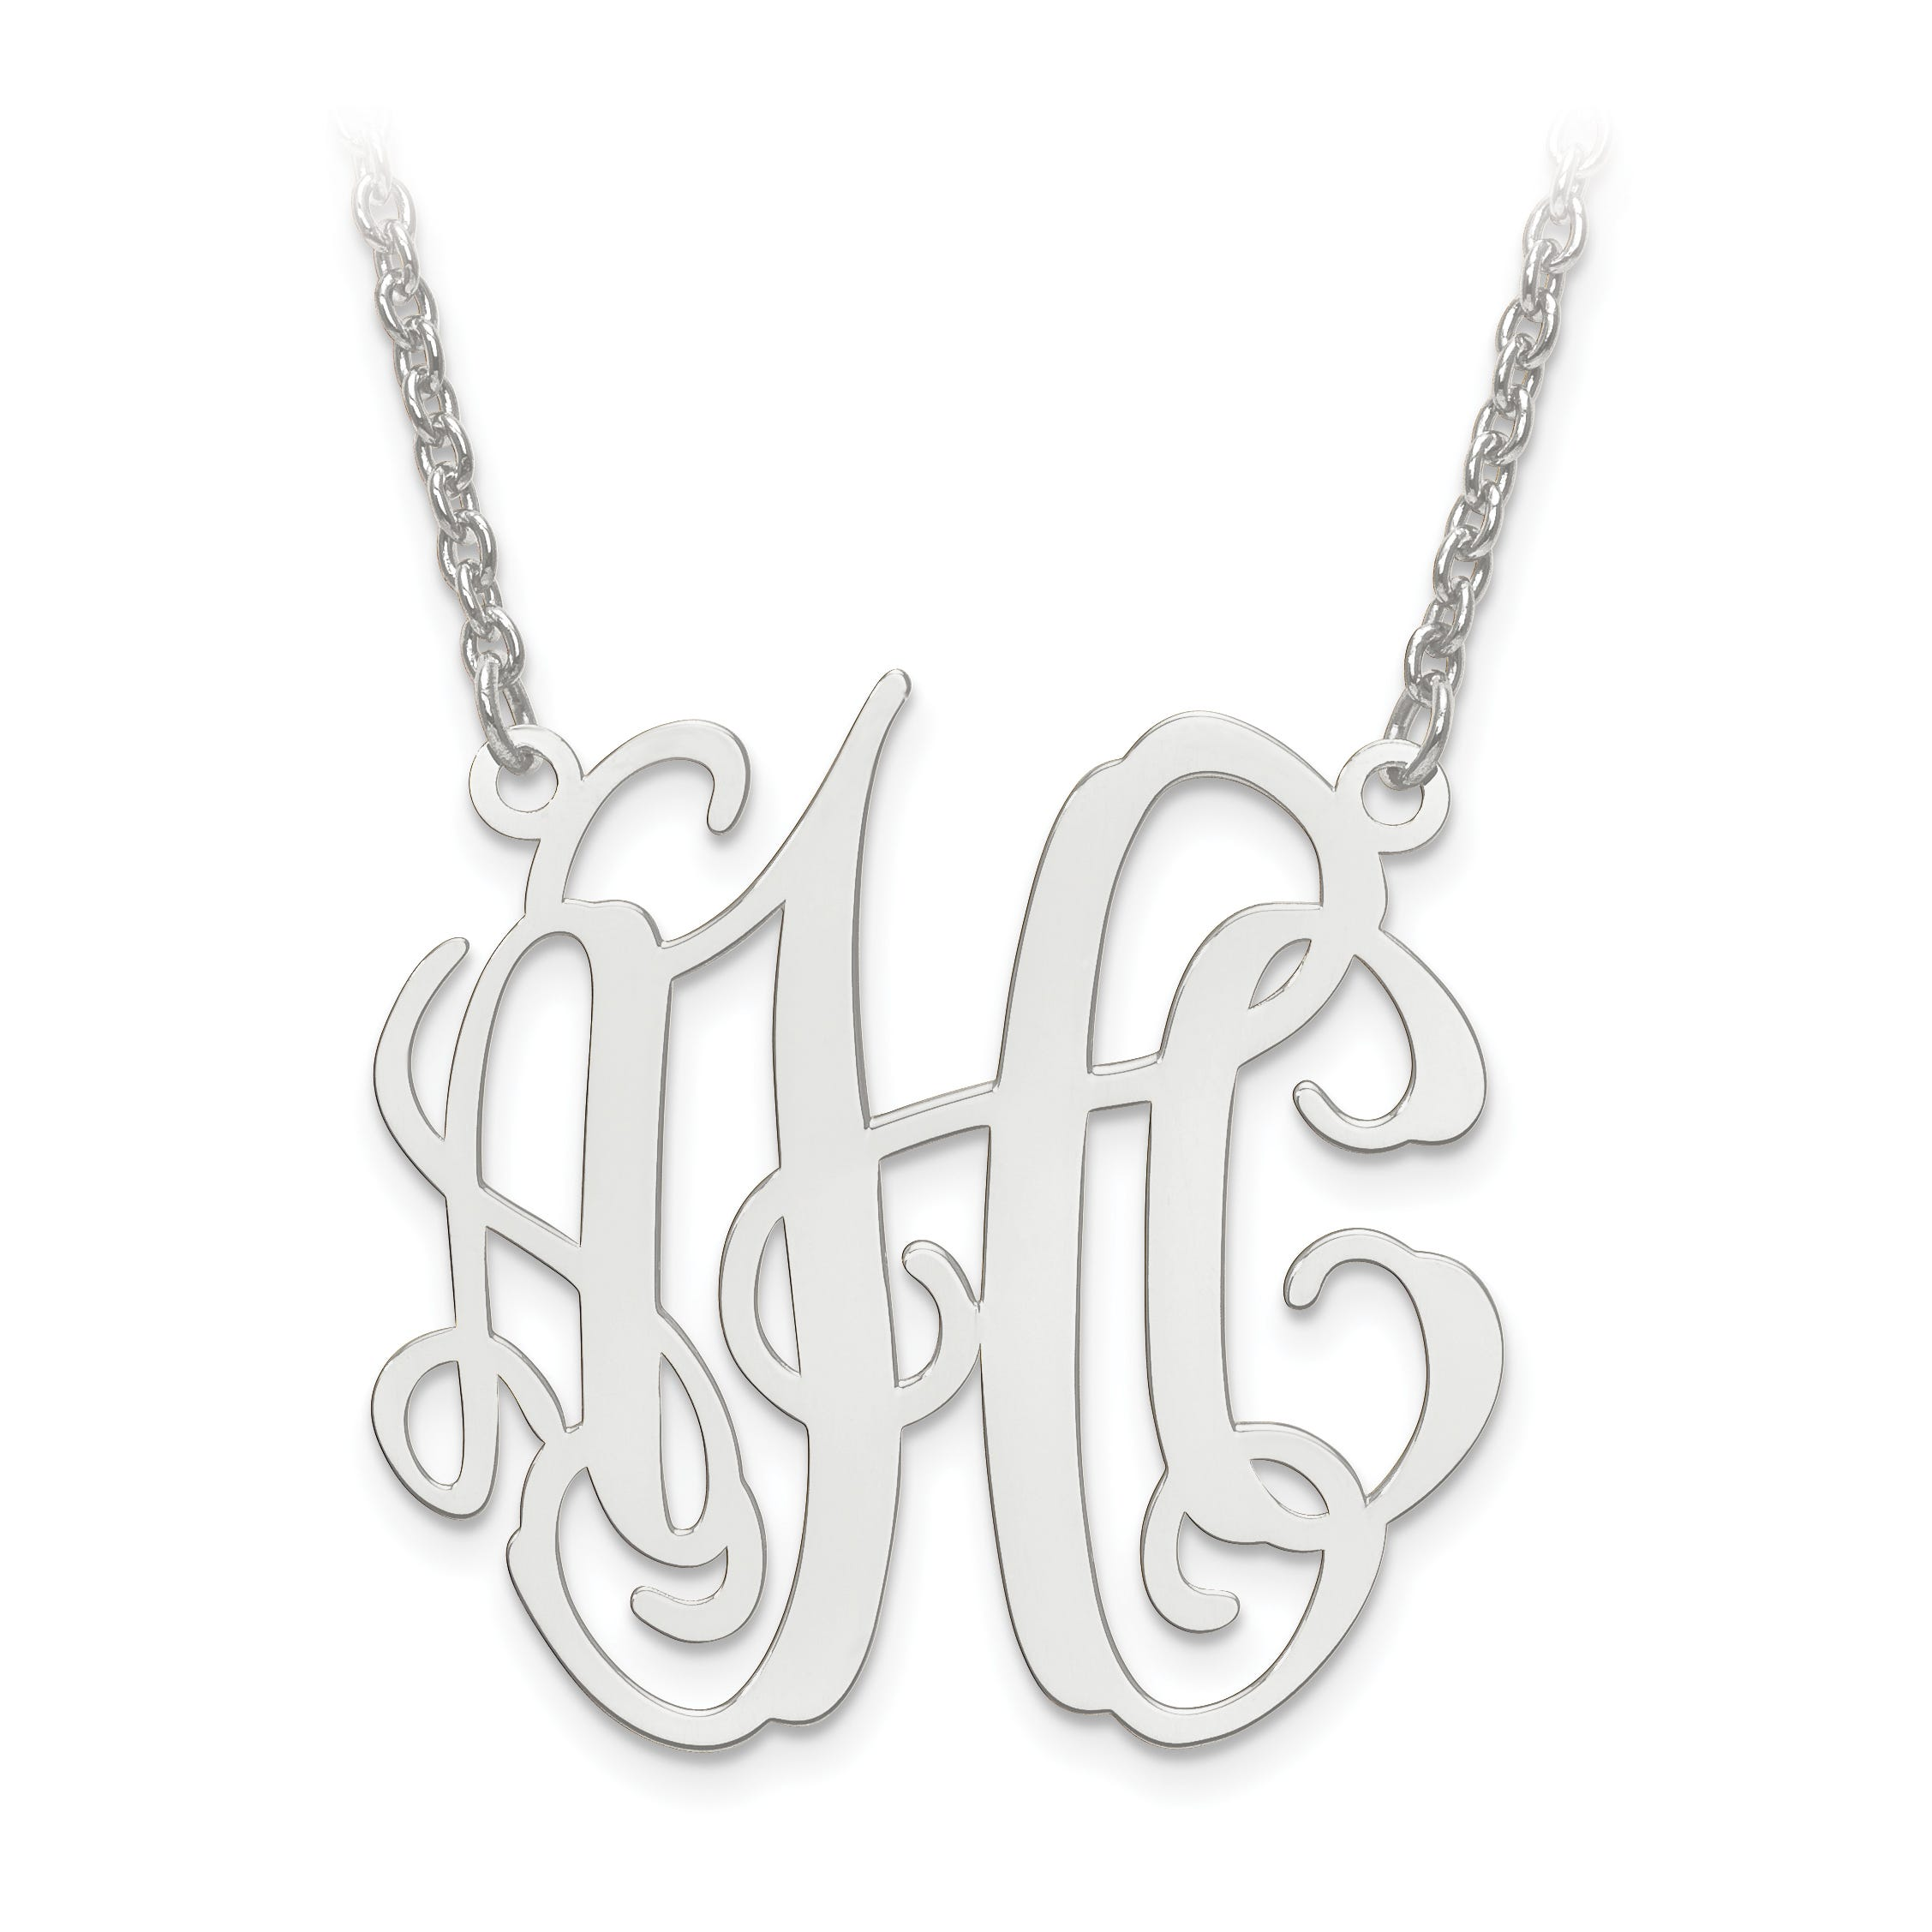 Laser Circular Shaped 30x31 Monogram Plate Pendant in Sterling Silver (up to 3 letters)